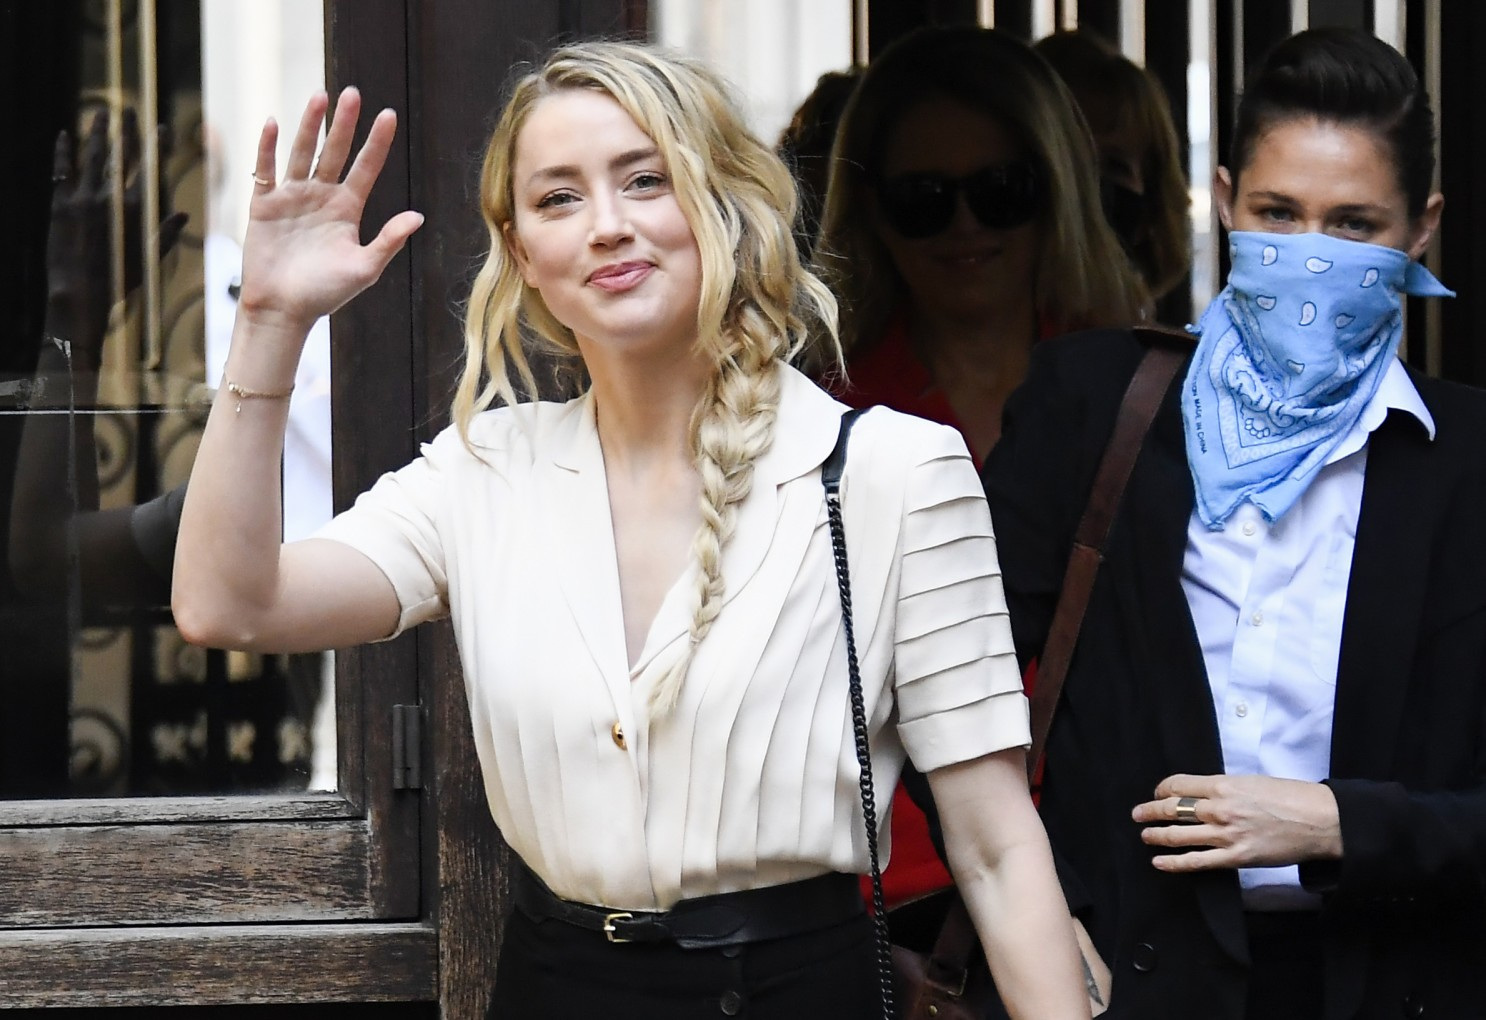 Amber Heard arrives at the High Court in London on Monday to testify in Johnny Depp's libel trial against the Sun tabloid.